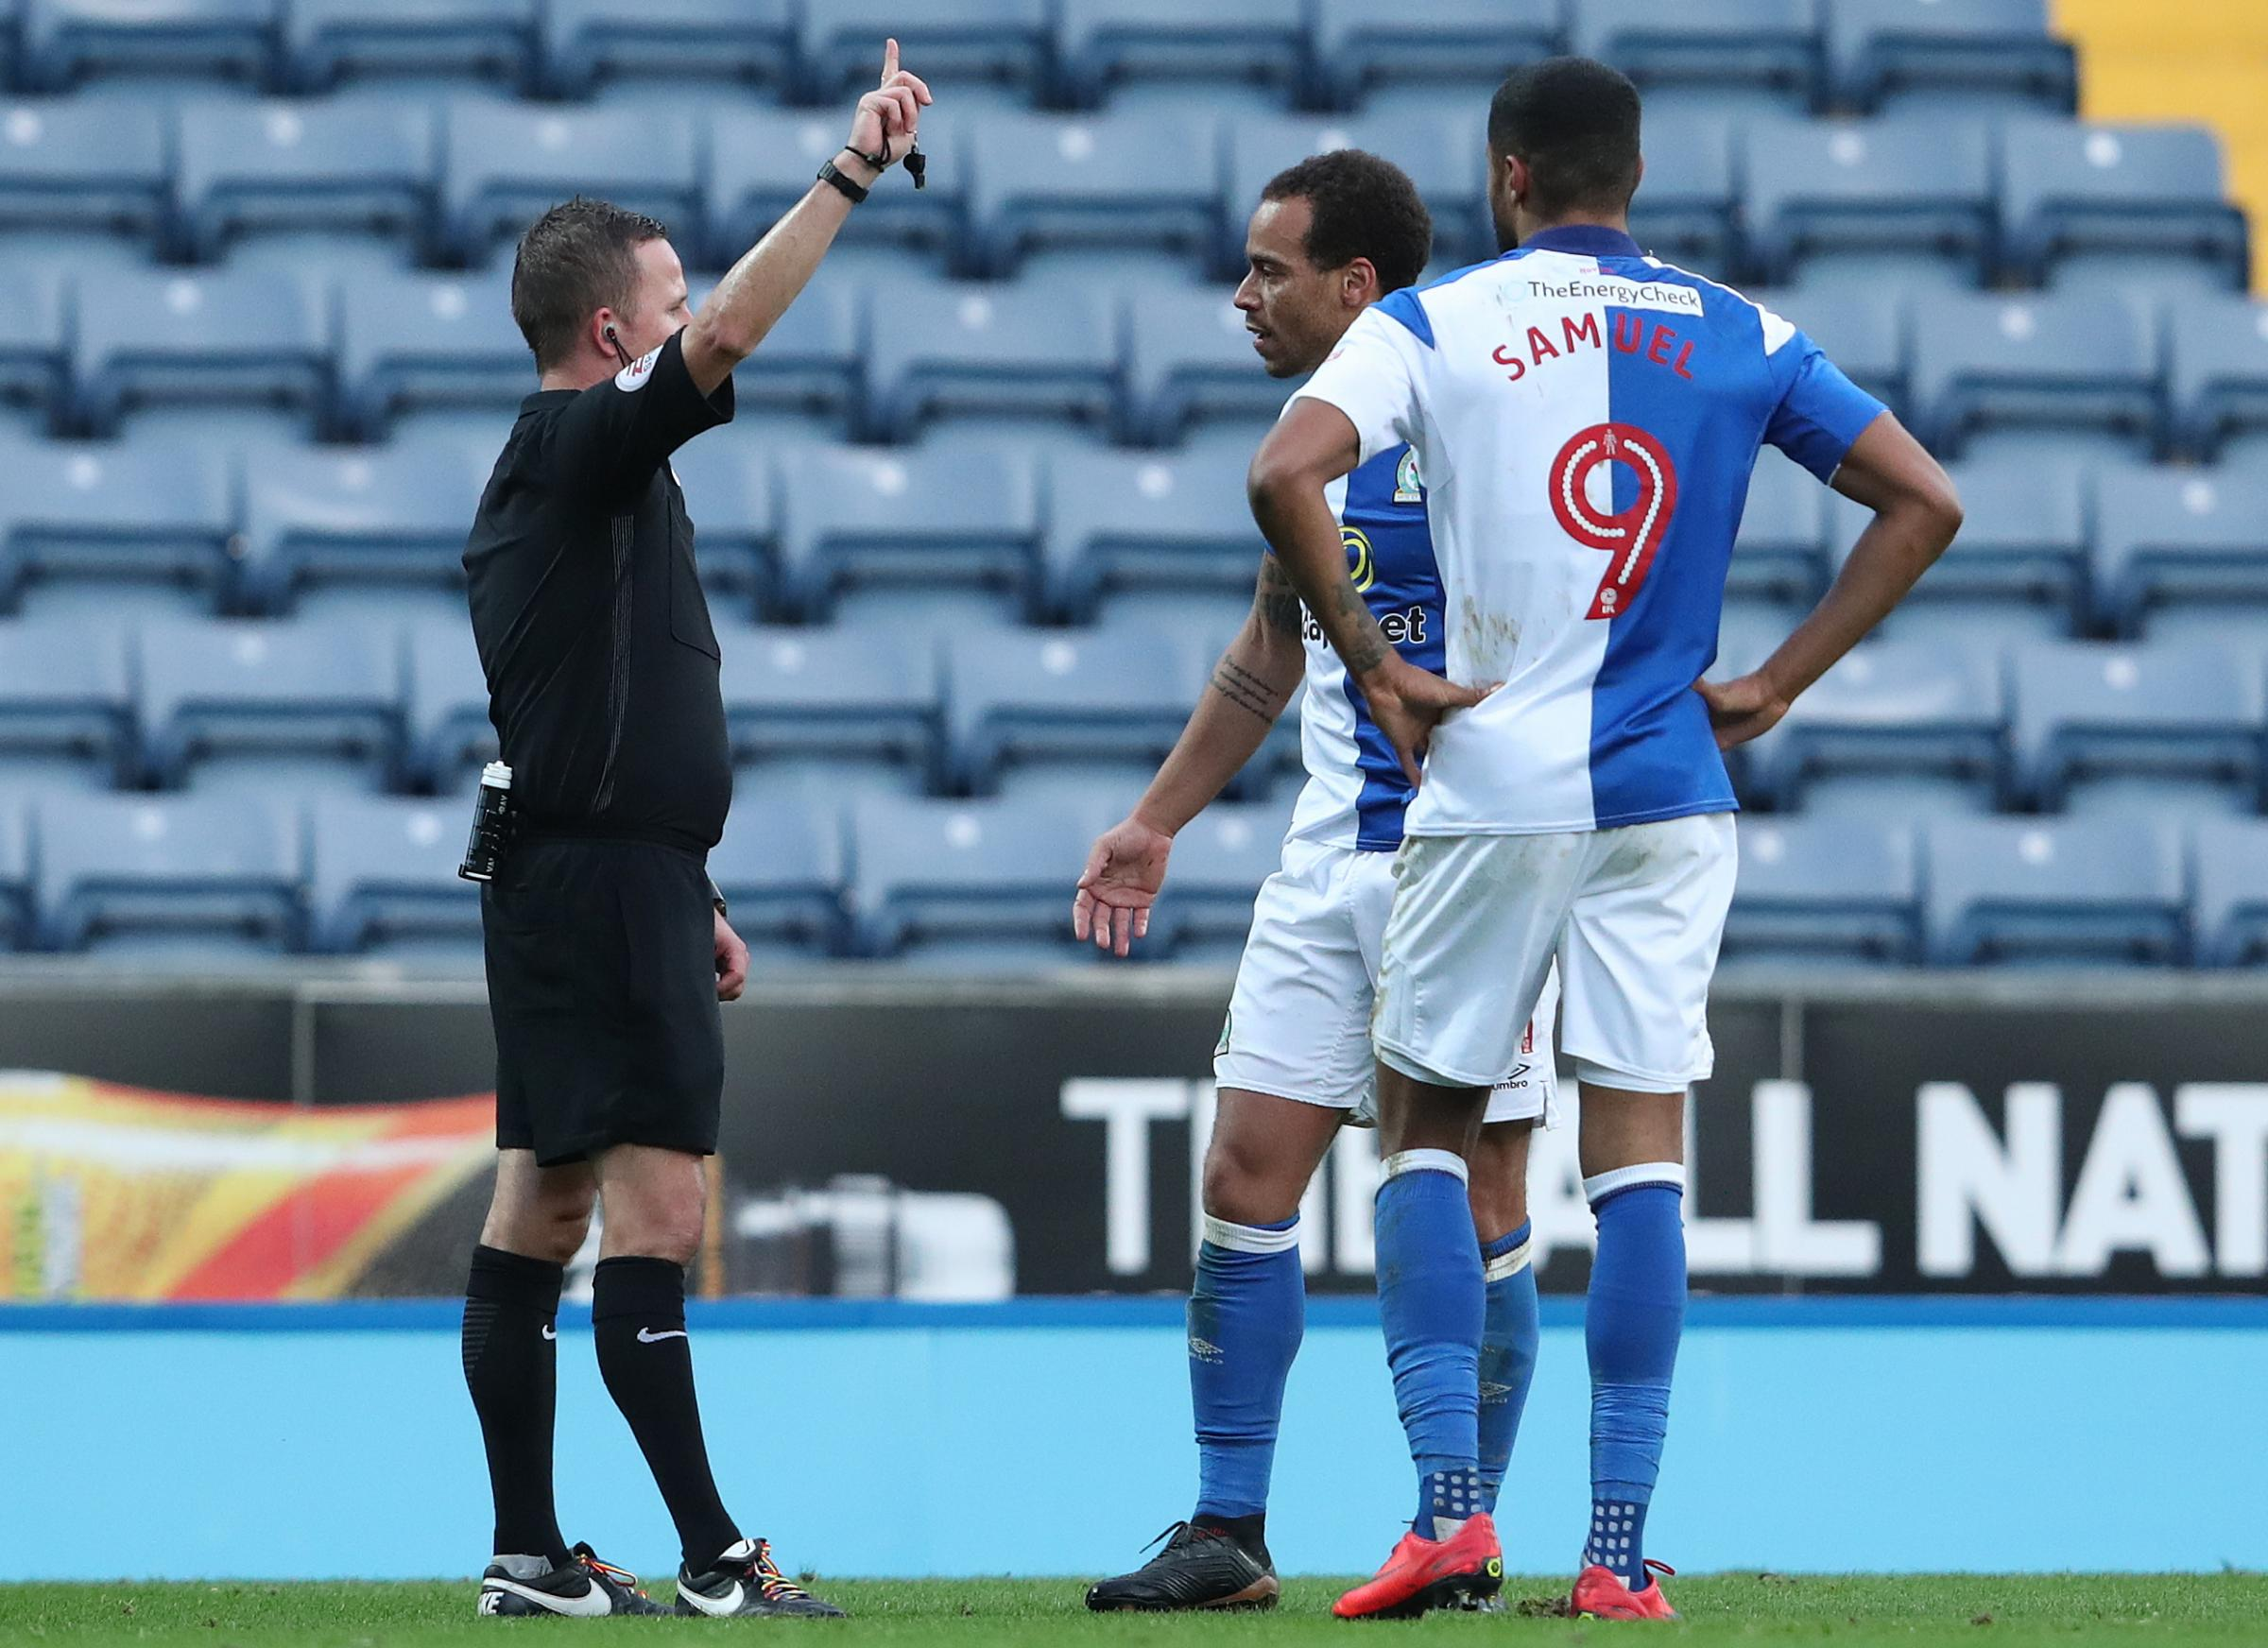 Rovers will be without Elliott Bennett for four games after his red card against Crewe